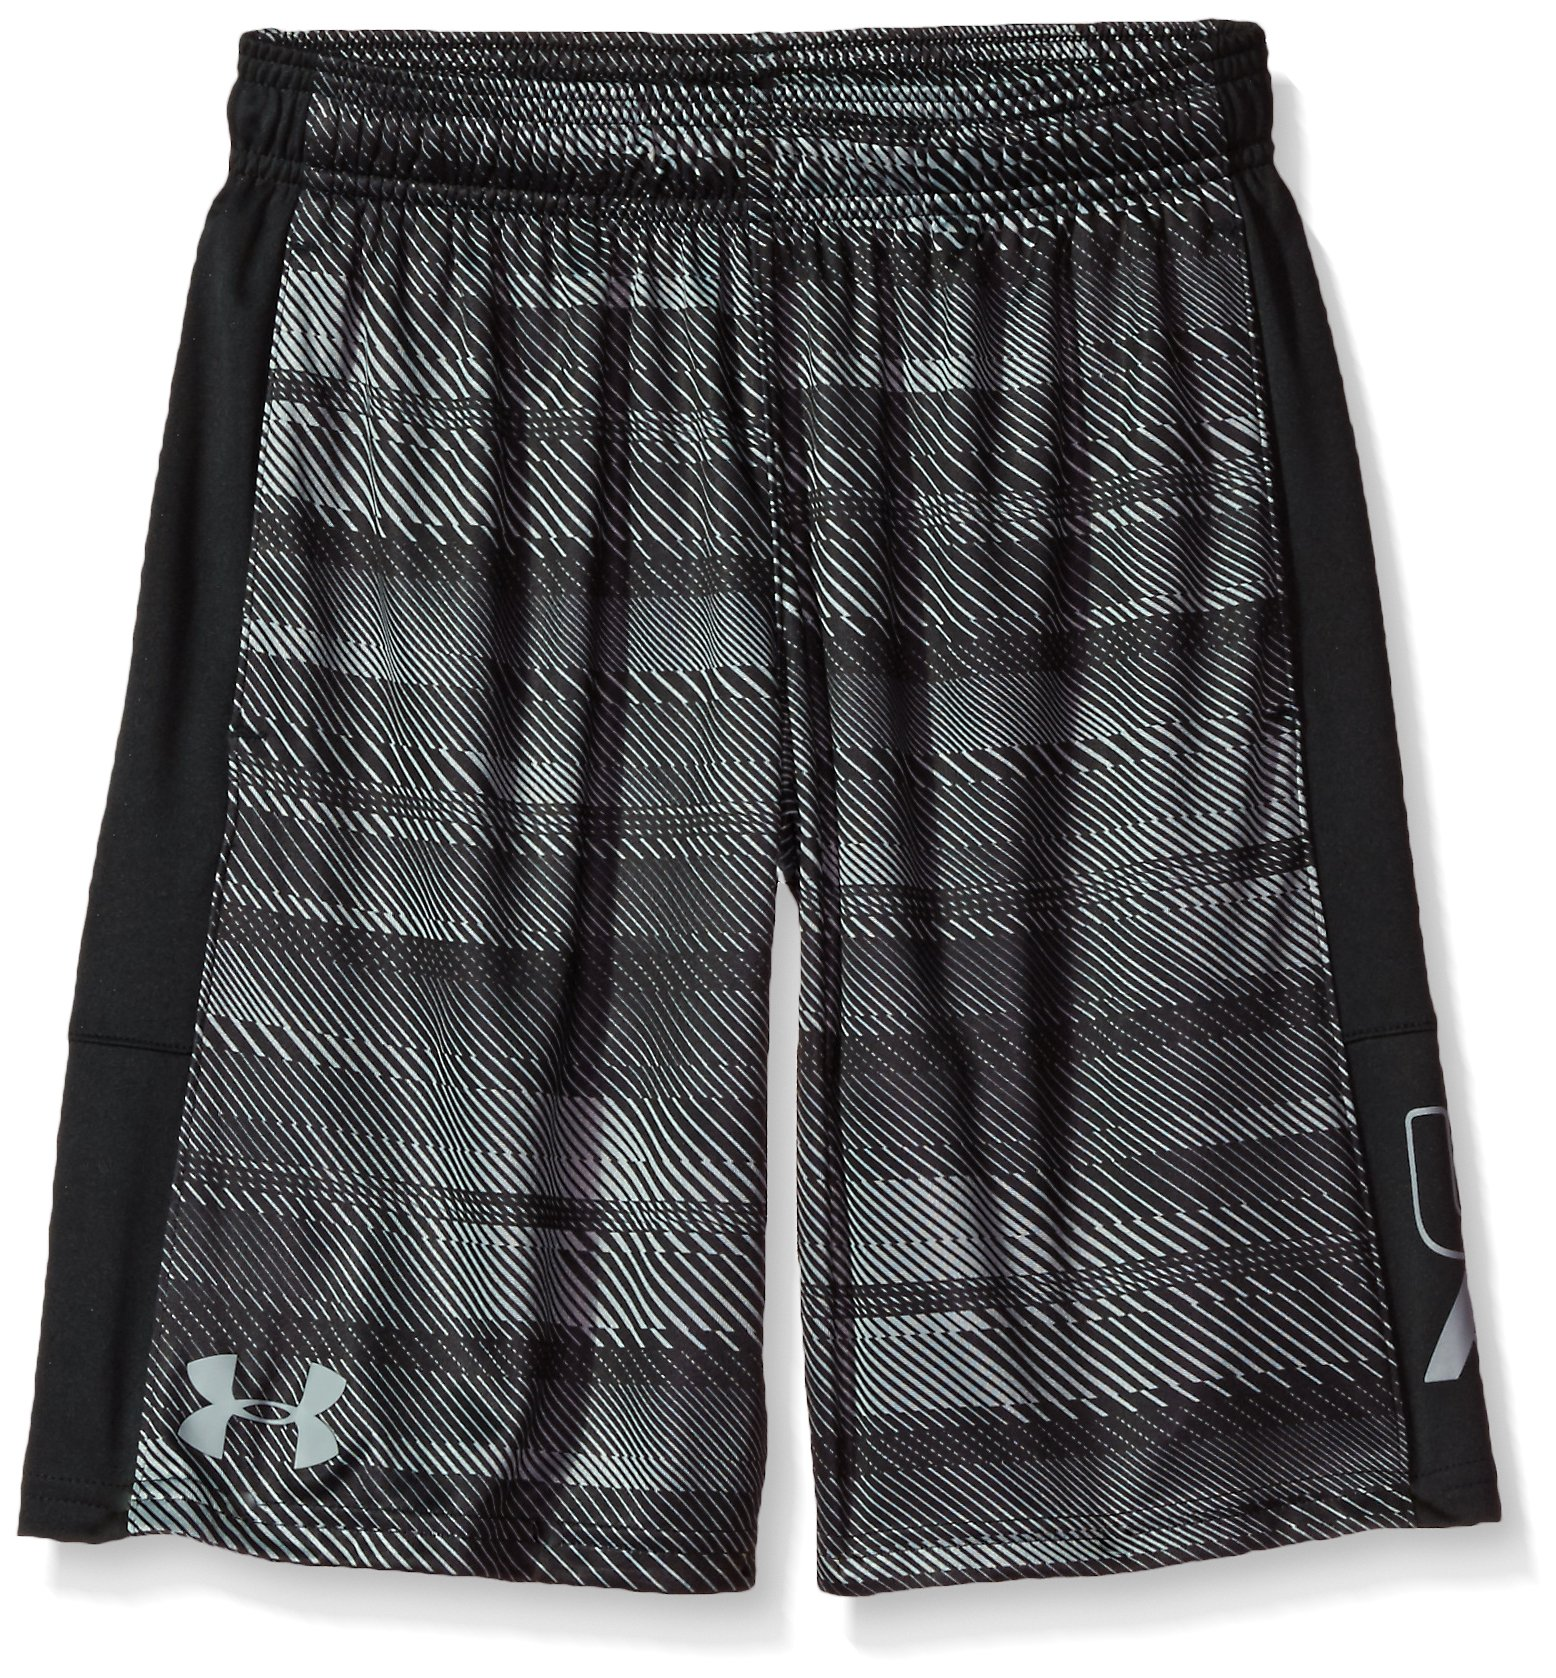 Under Armour Boys' Instinct Printed Shorts,   Black /Steel Youth X-Small by Under Armour